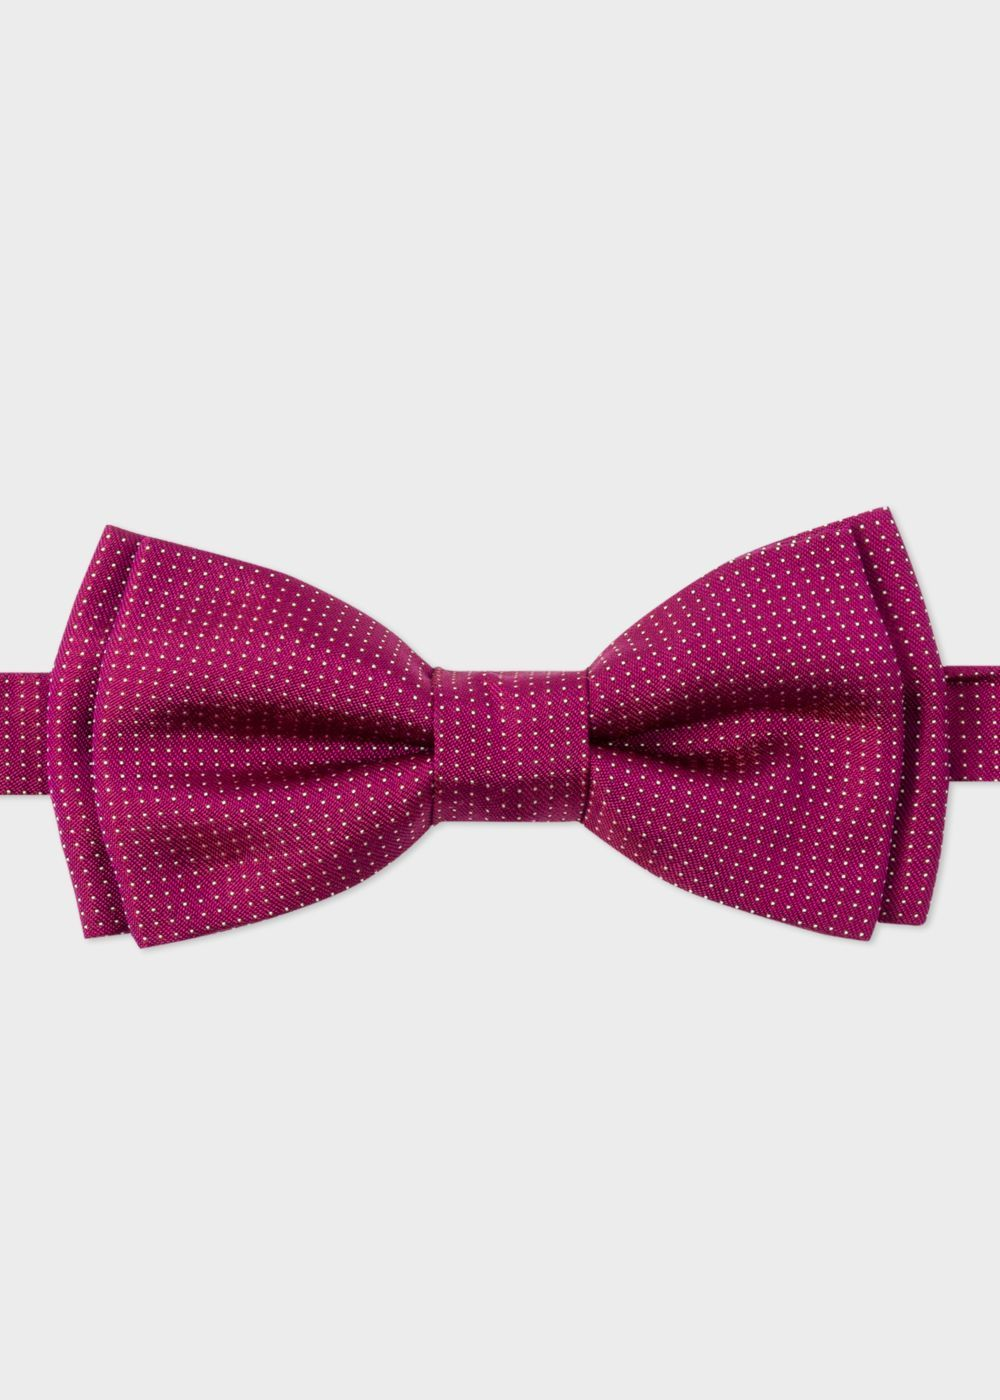 ACCESSORIES - Bow Ties Paul Smith Bl2KzY0vbQ